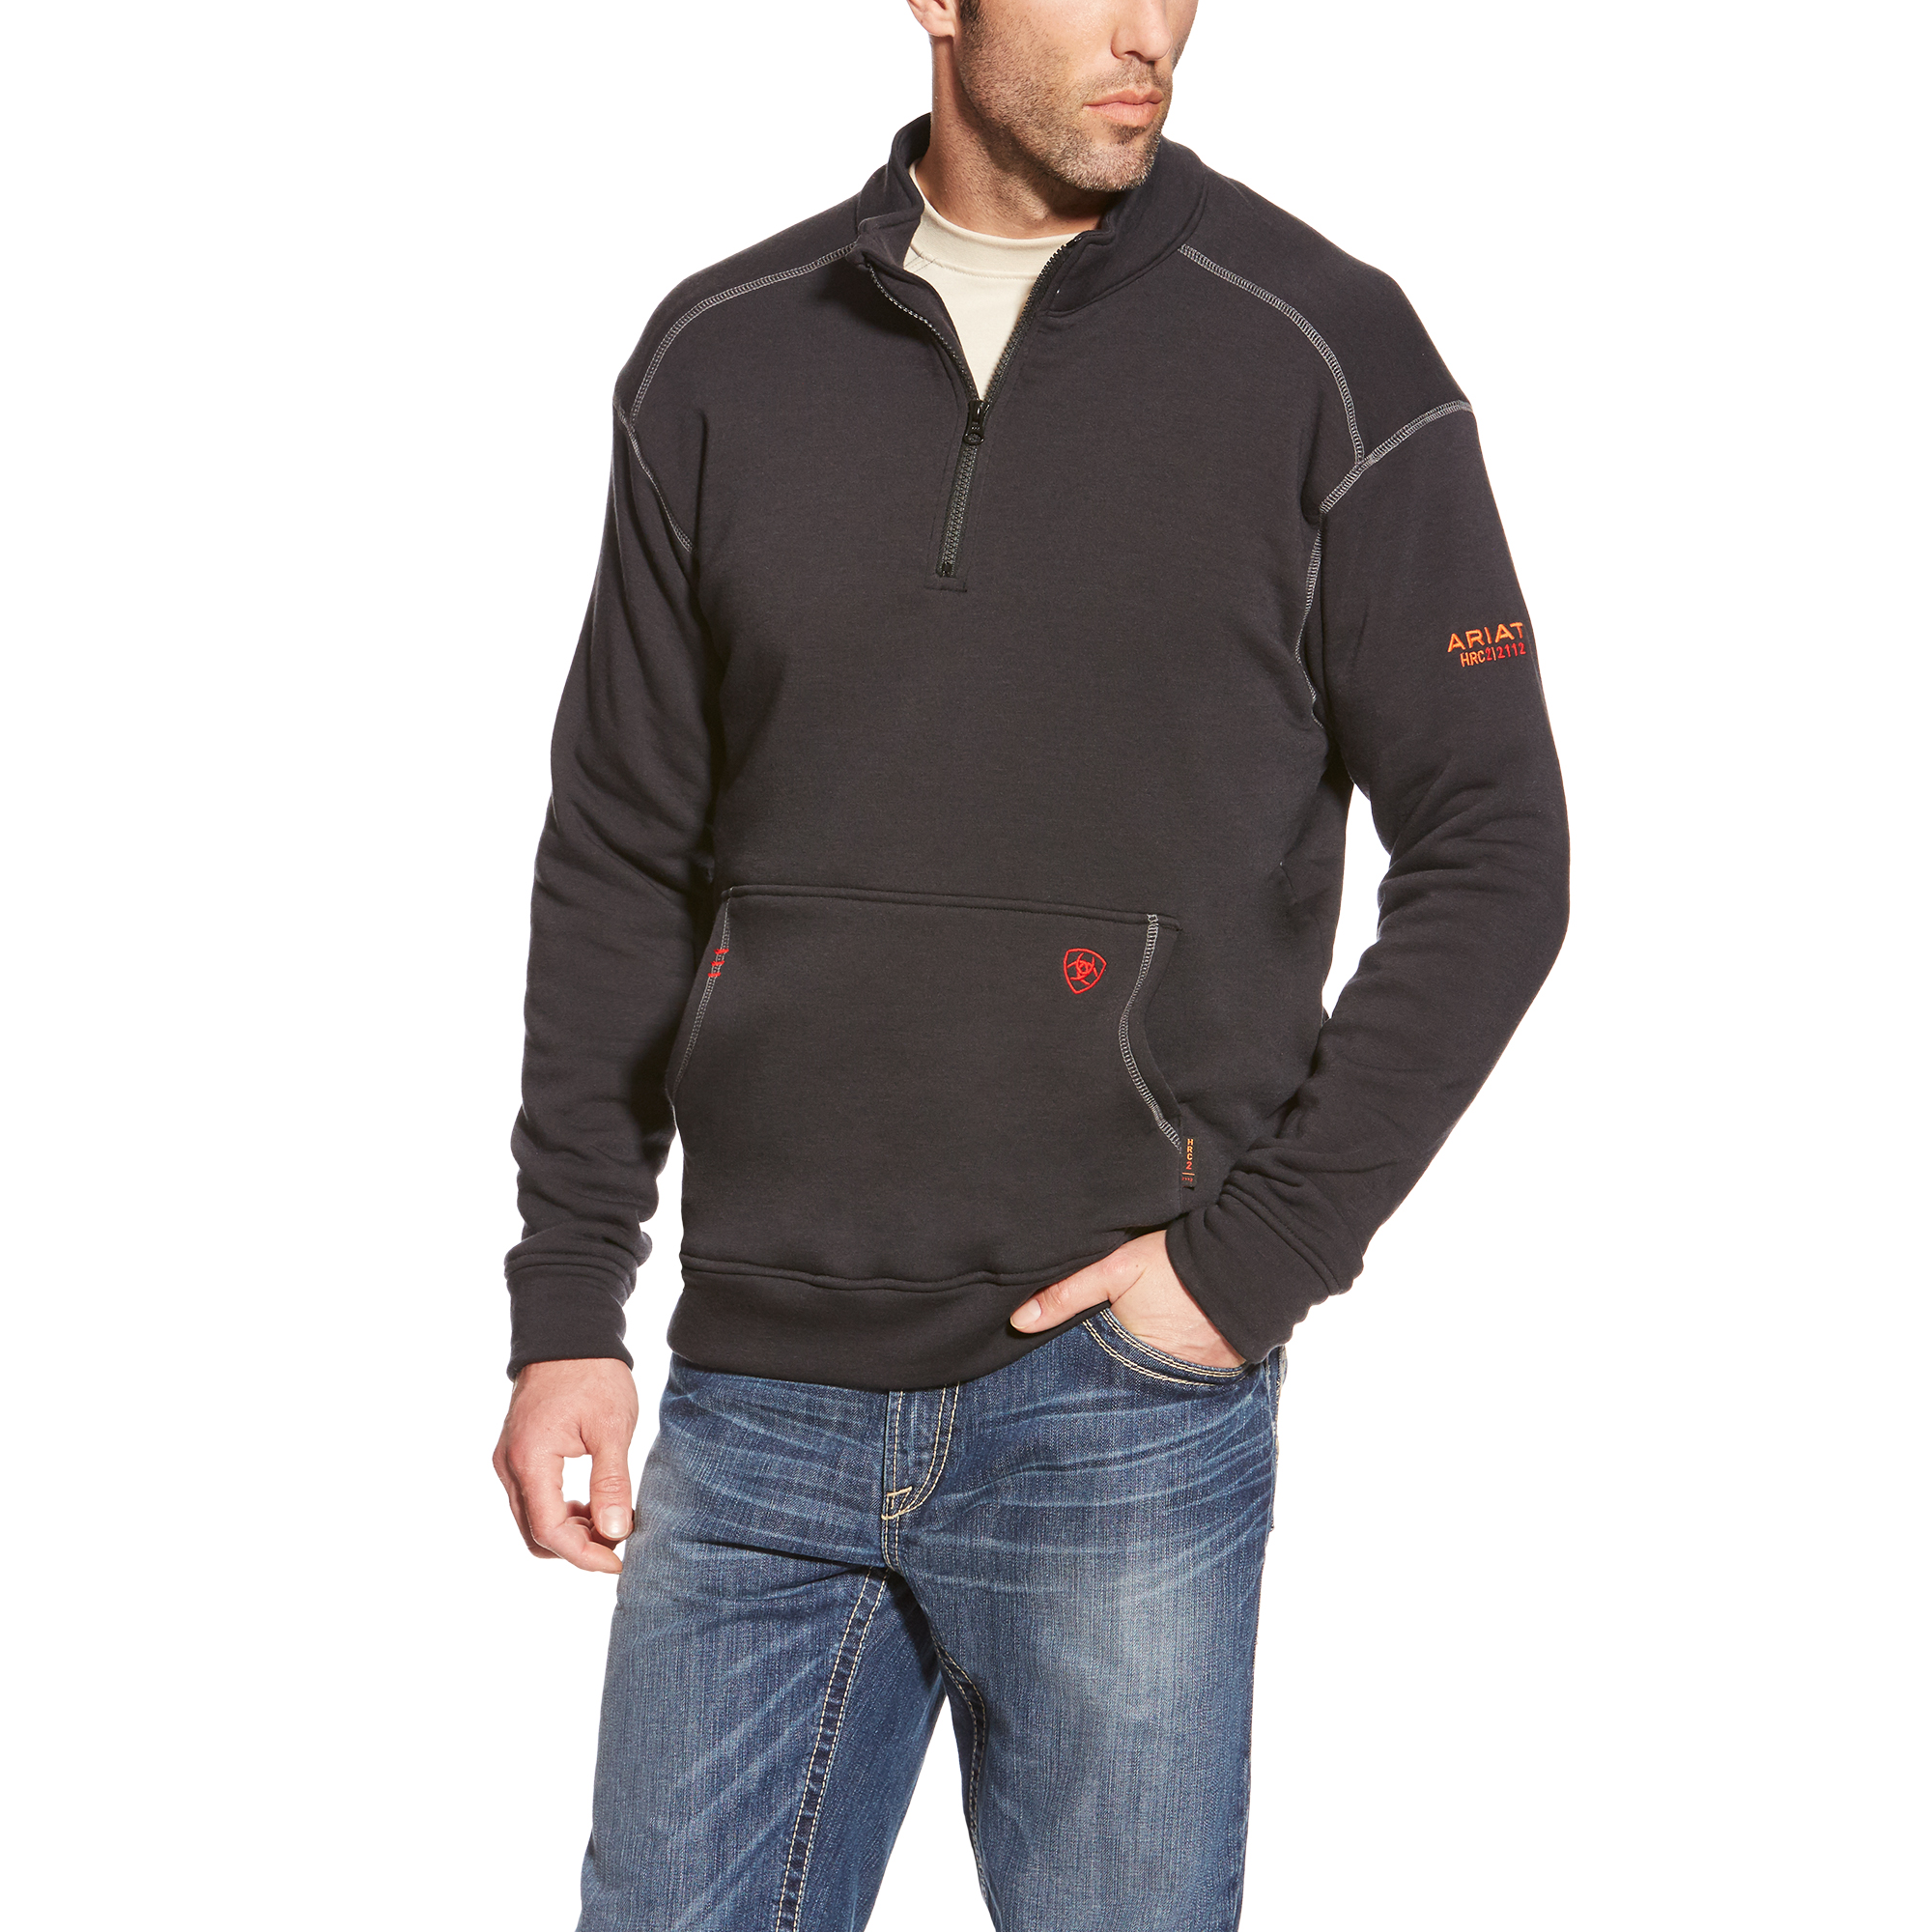 Ariat FR Polartec 1/4 zip Fleece Black-Ariat